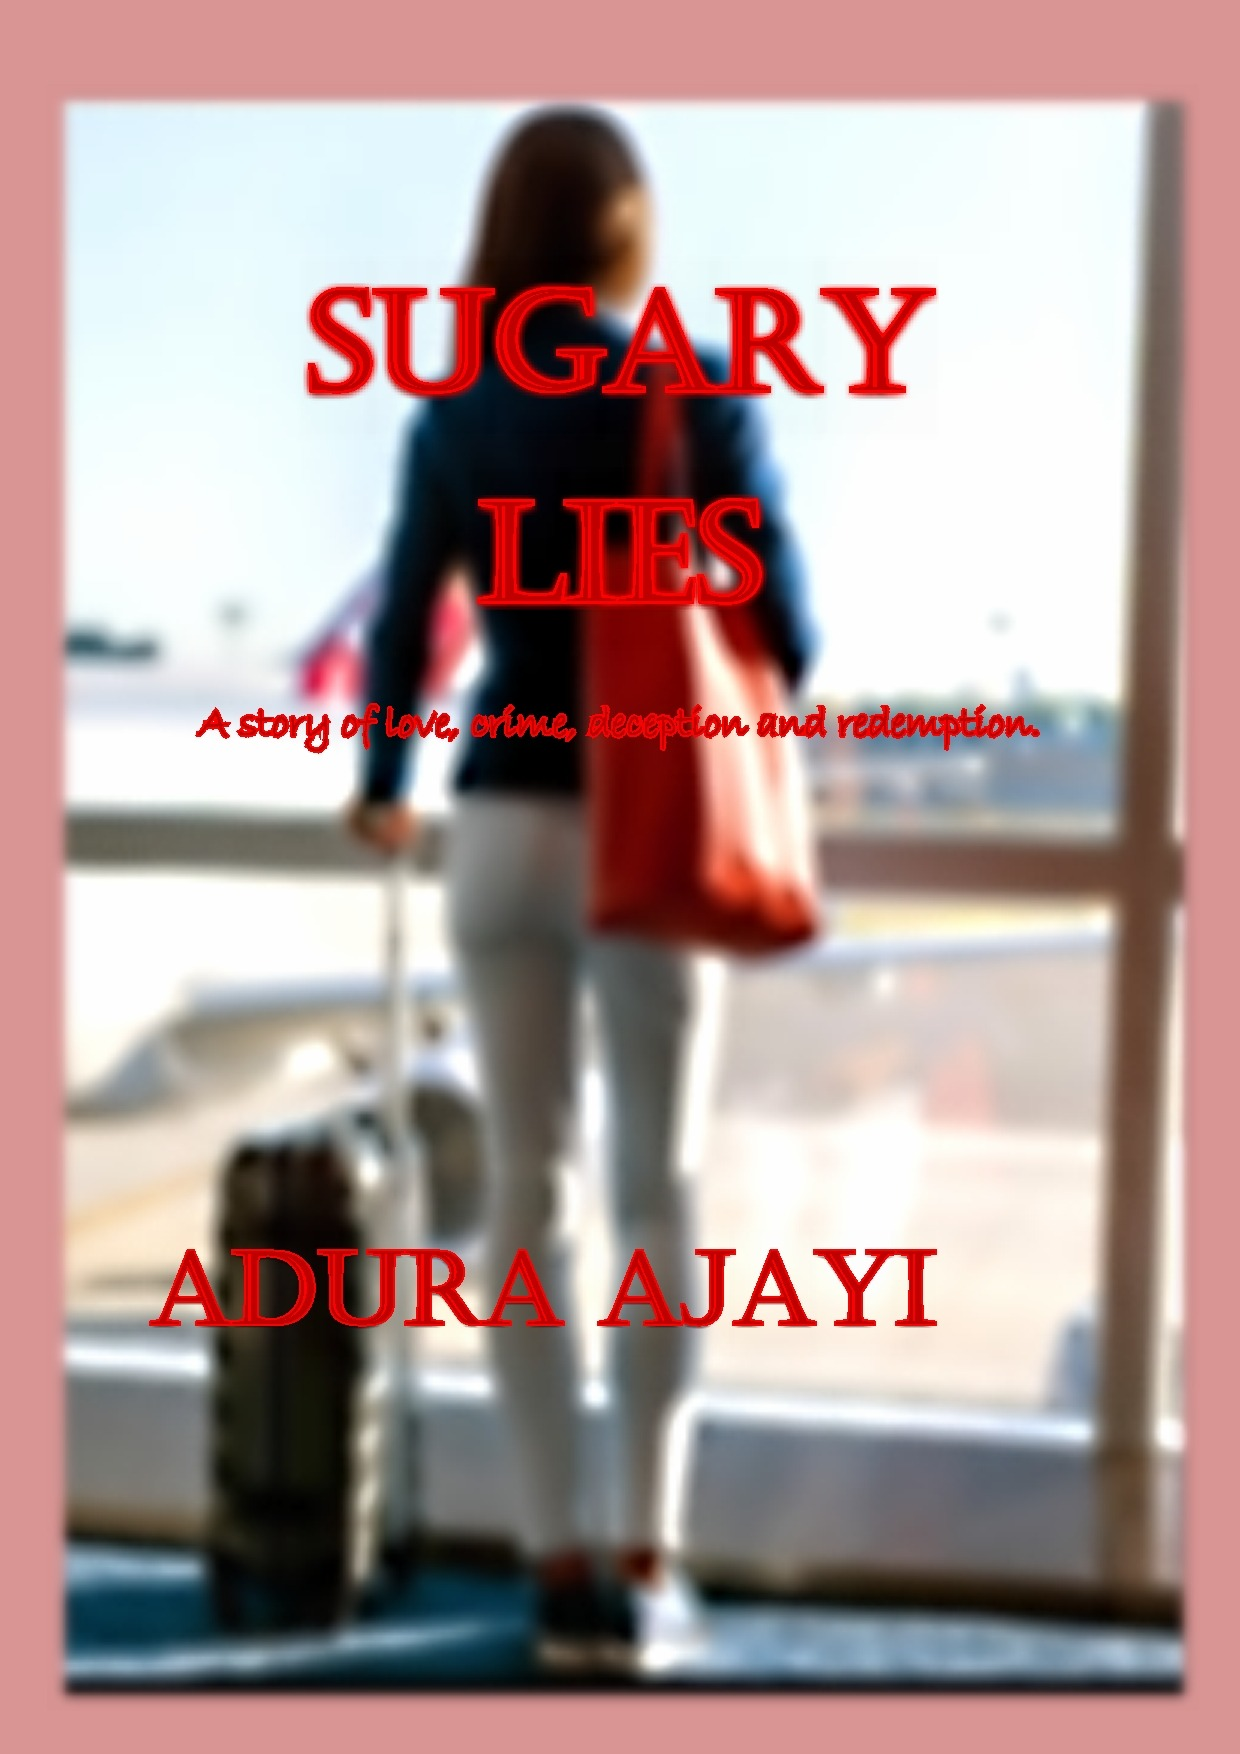 Sugary Lies (Preview)